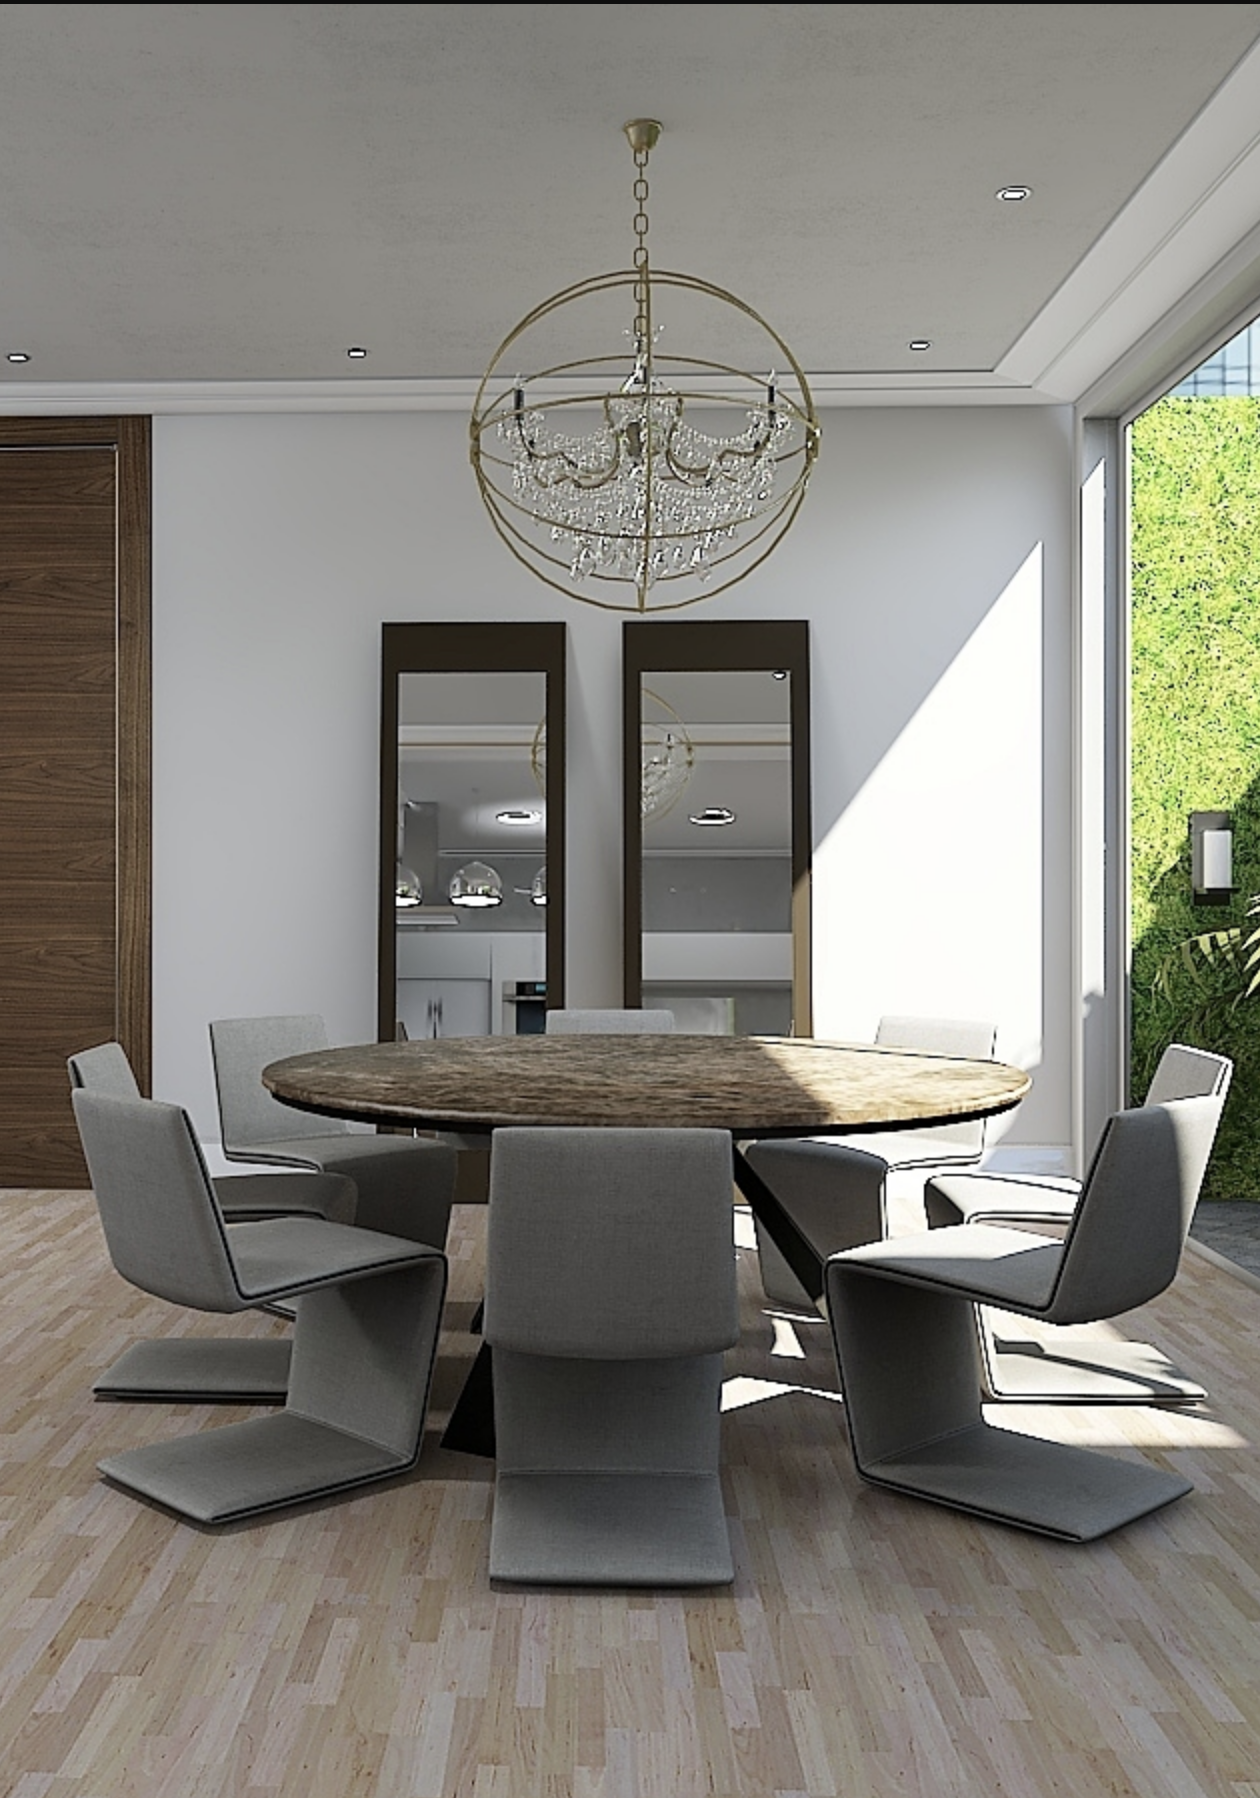 Homestyler Free Kitchen Design Software Design Your Dream Dining Room On Homestyler Diningroom Dining